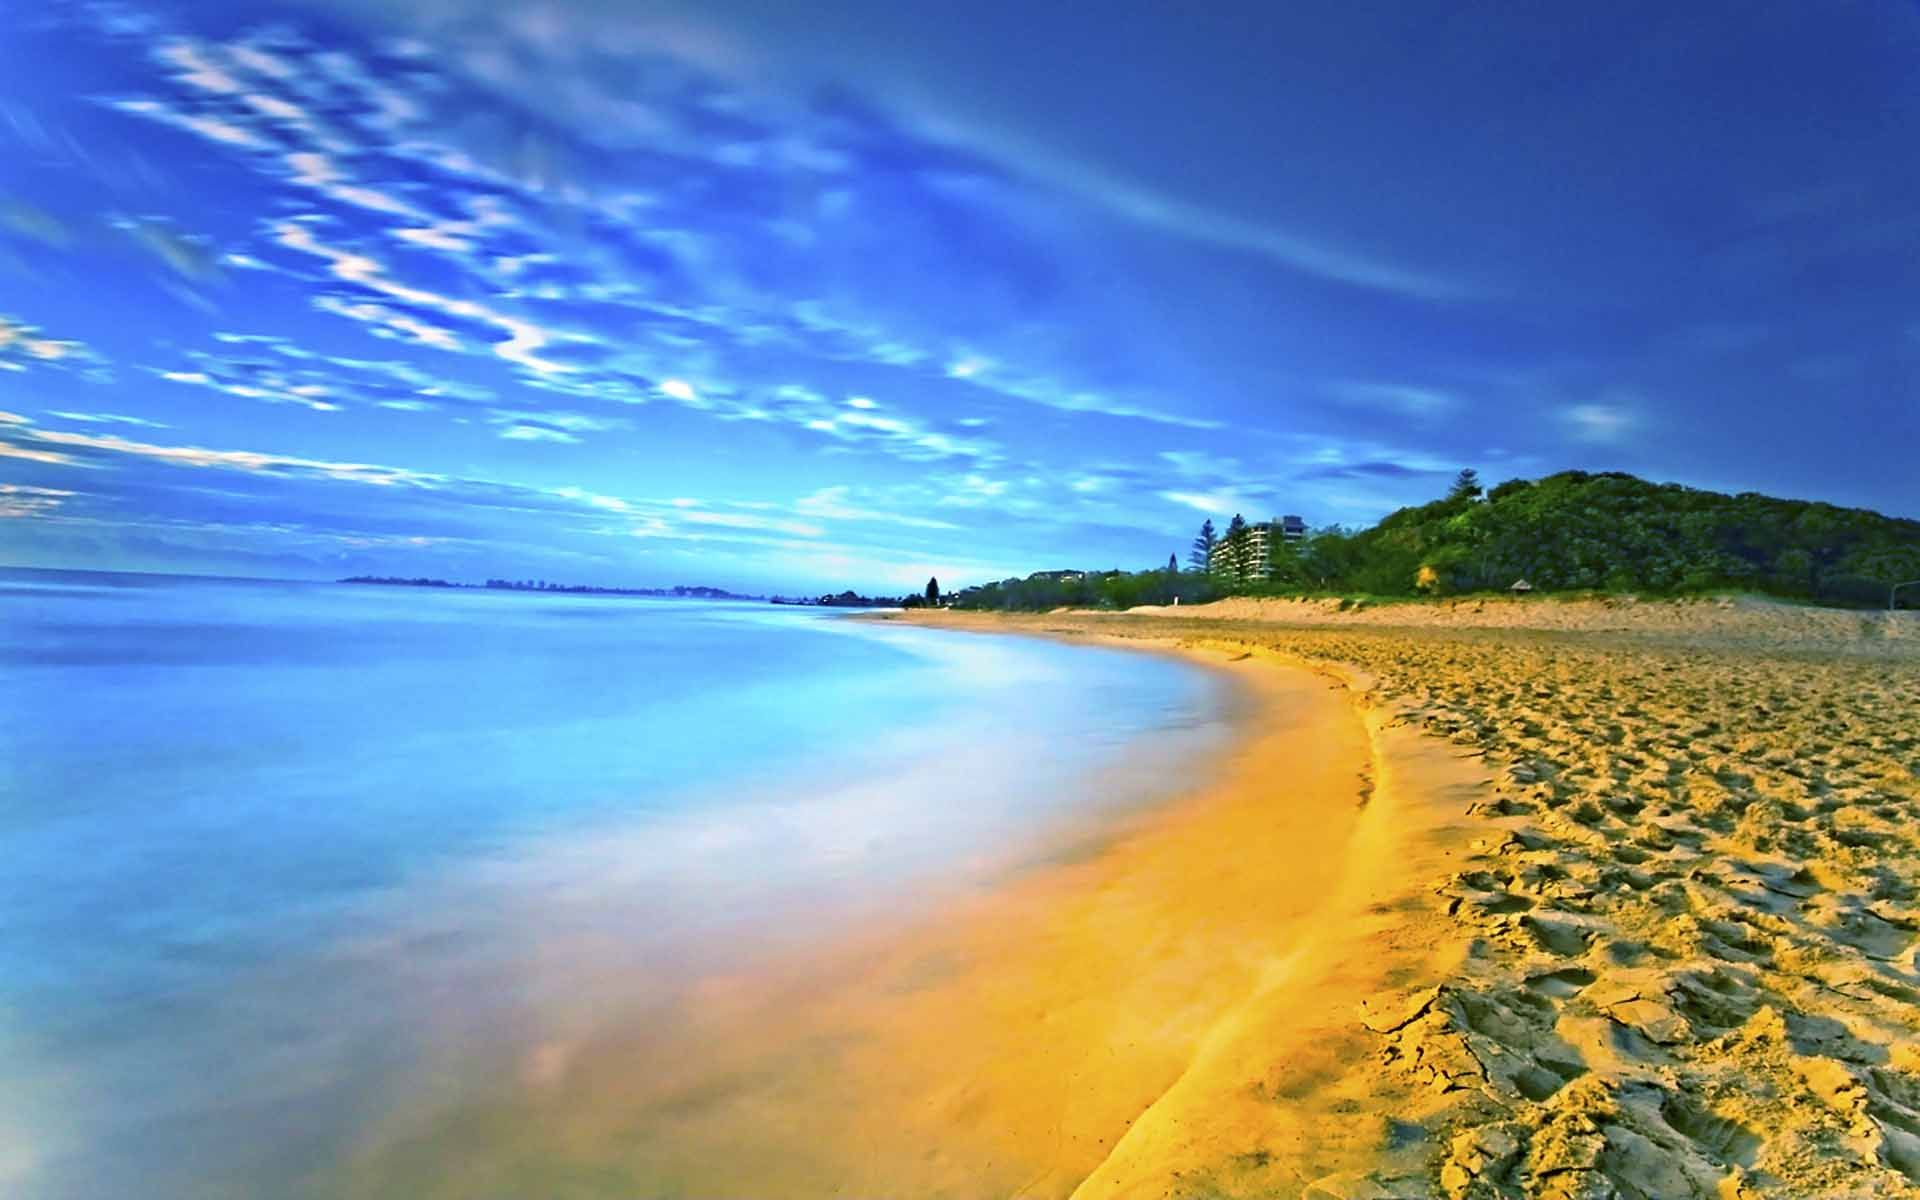 Goa Beach Hd Images: Stay Simple Jesant Valley Goa